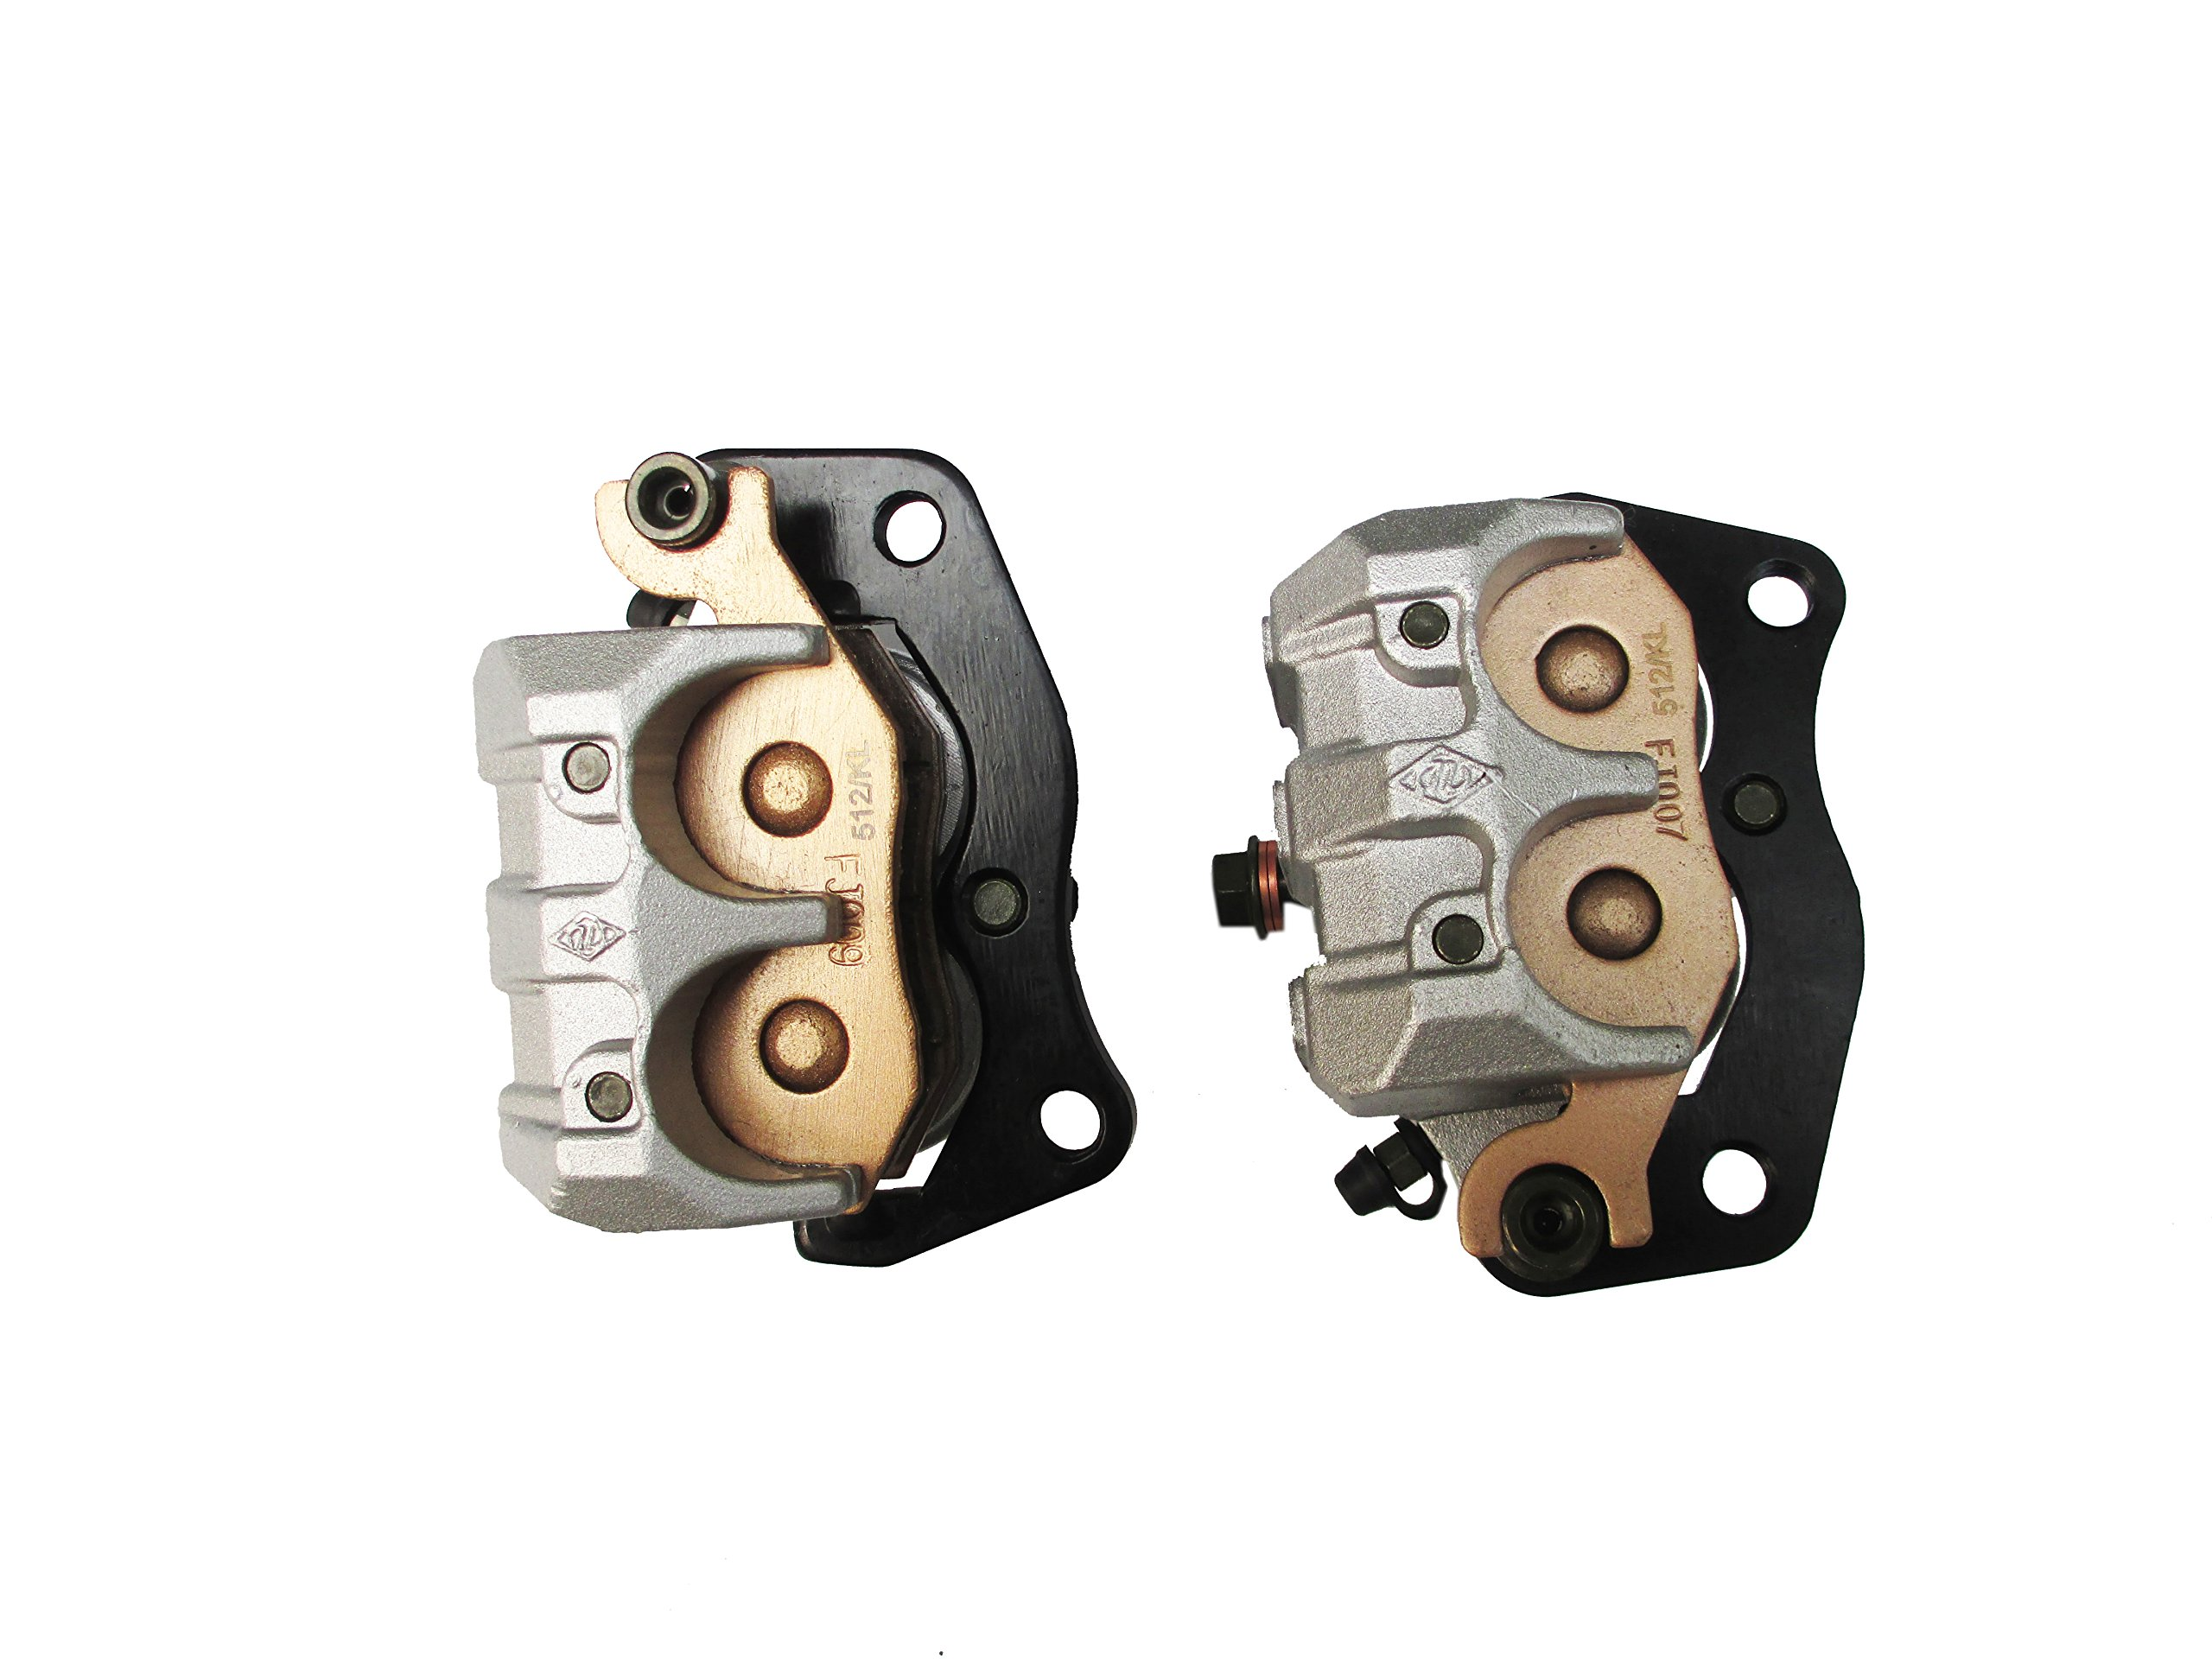 E-accexpert Left & Right Front Brake Caliper Replacement For YAMAHA RHINO 700 YXR 700 2008-2013 by WADS1000284 (Image #5)